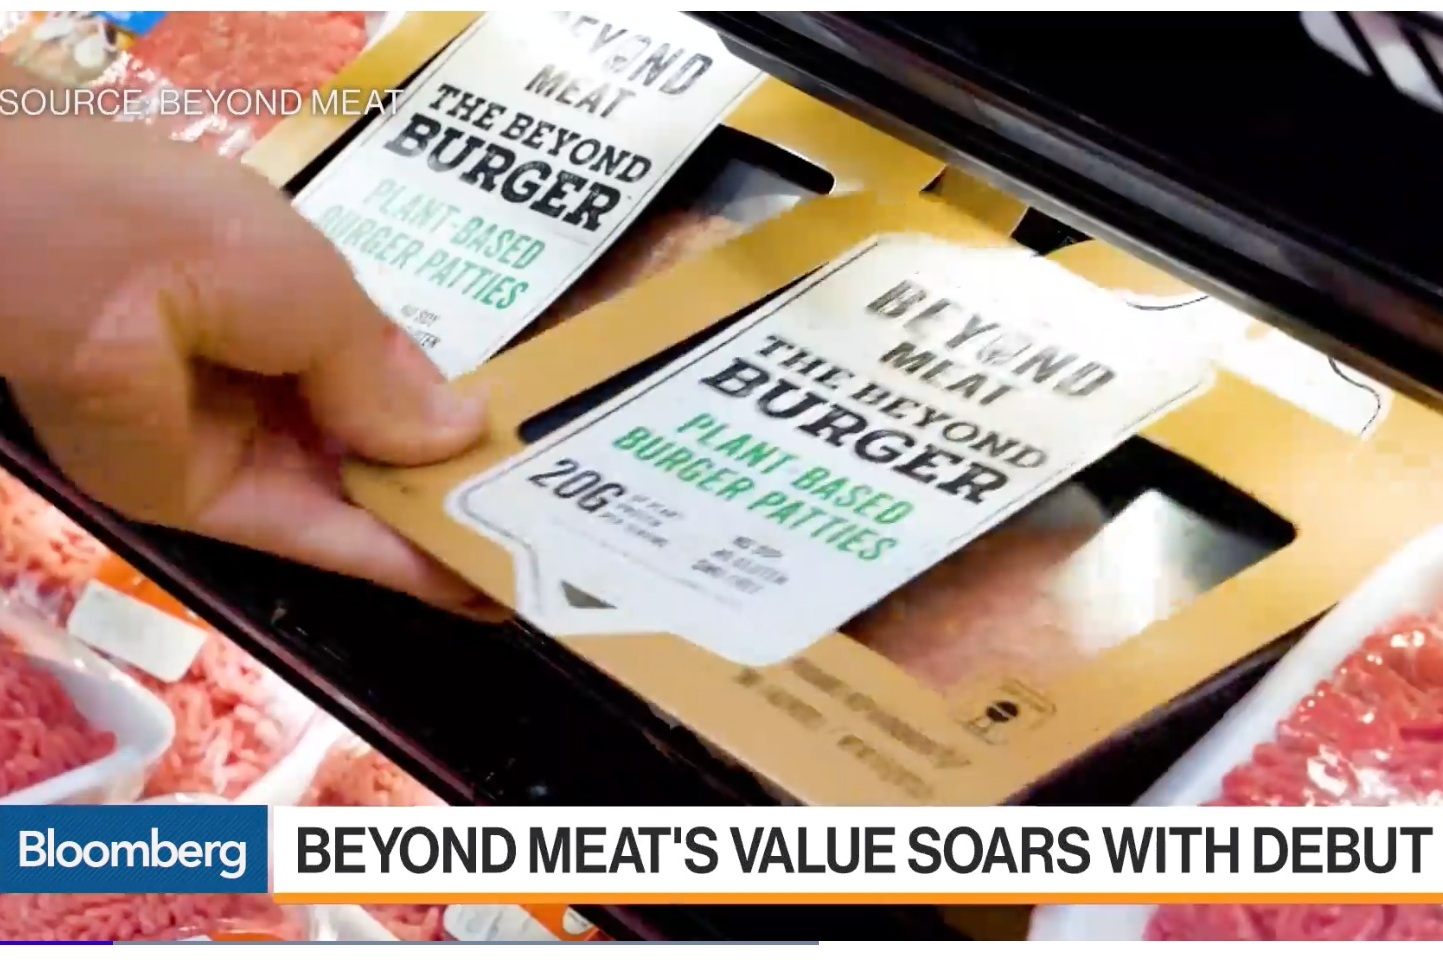 Beyond Meat Makes History With the Biggest IPO Pop Since 2008 Crisis.  Portfolio company Beyond Meat went where no company had gone in more than a decade as shares nearly tripled in their first day of trading. Founder Ethan Brown sits down with Bloomberg to explain the exciting future for this portfolio company.   Watch the Interview